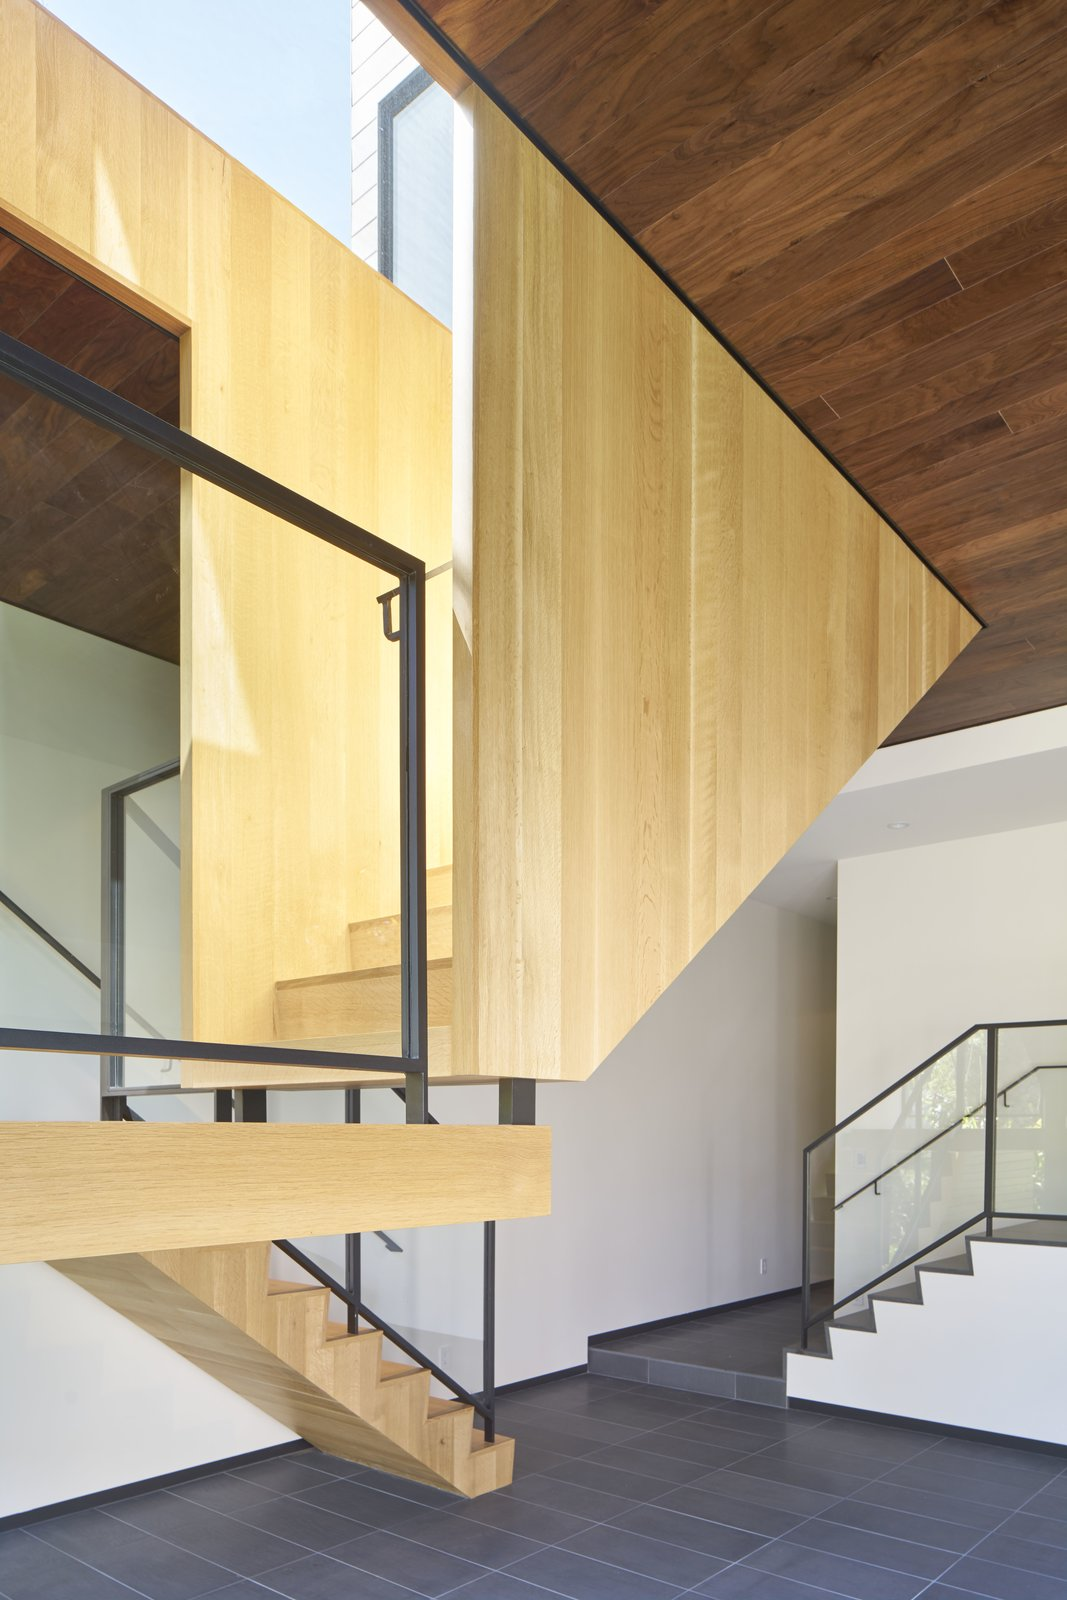 Staircase, Wood Tread, Metal Railing, and Glass Railing  29th Street Residence by Schwartz and Architecture